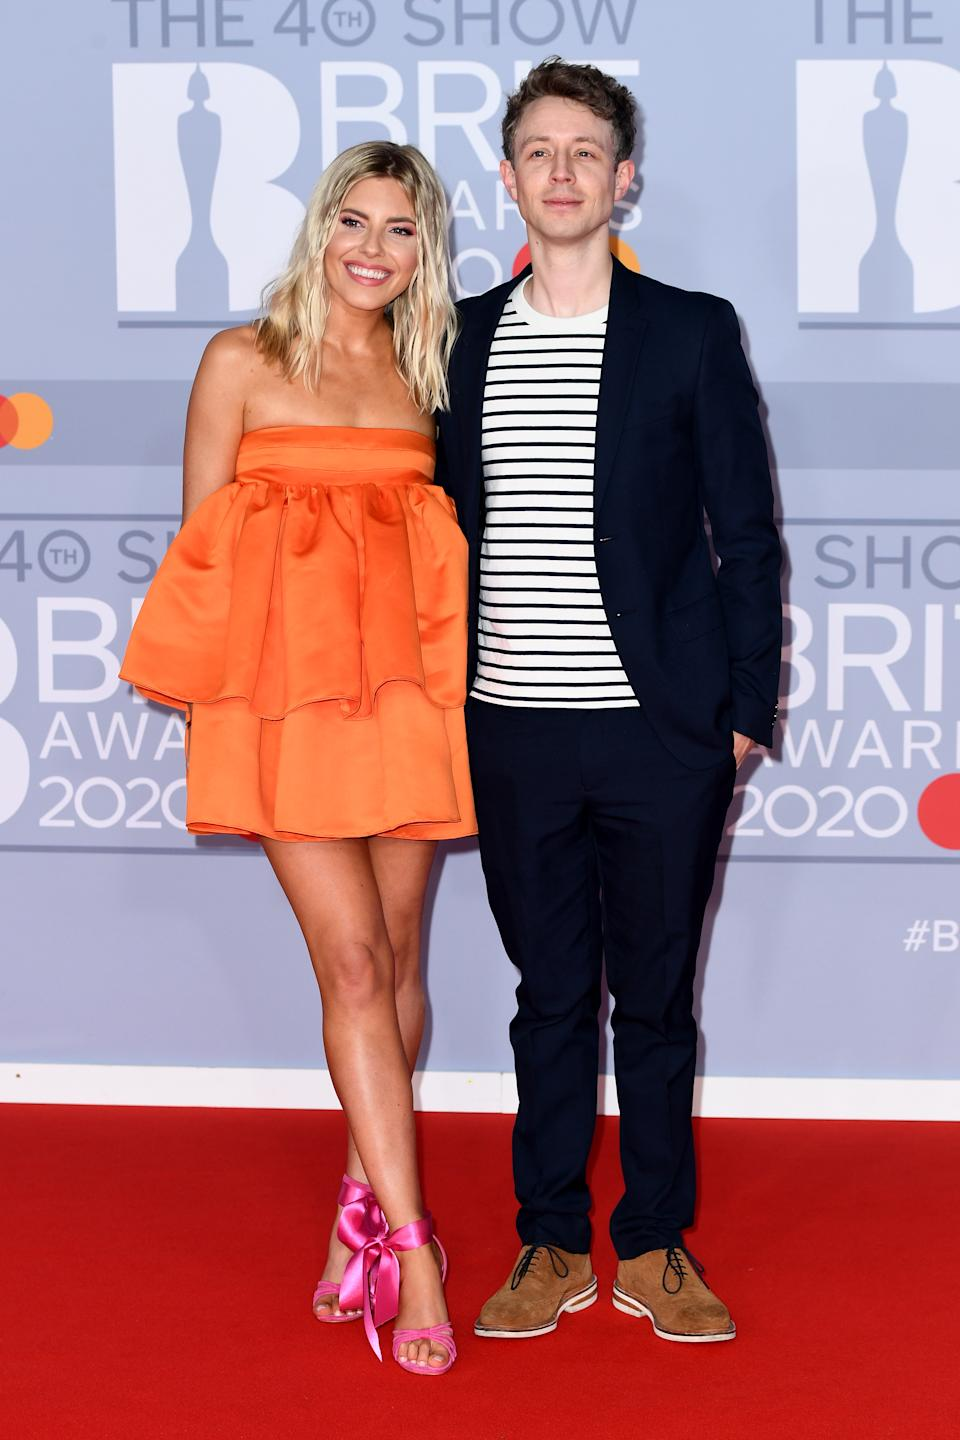 LONDON, ENGLAND - FEBRUARY 18: (EDITORIAL USE ONLY) Mollie King and Matt Edmondson attends The BRIT Awards 2020 at The O2 Arena on February 18, 2020 in London, England. (Photo by Gareth Cattermole/Getty Images)